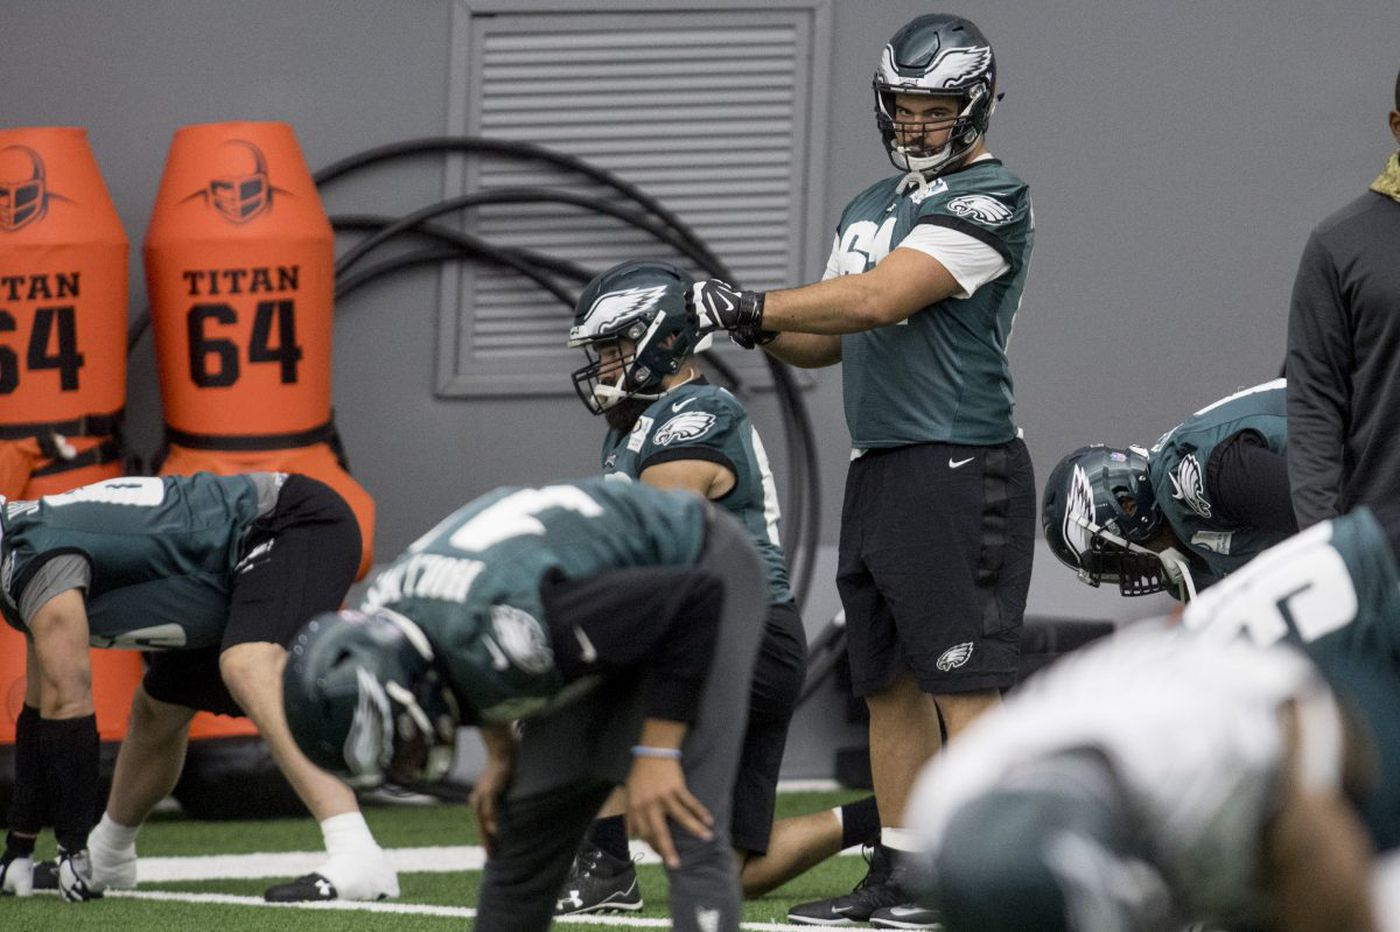 Eagles' Stefen Wisniewski hopes to play, but ankle is ailing